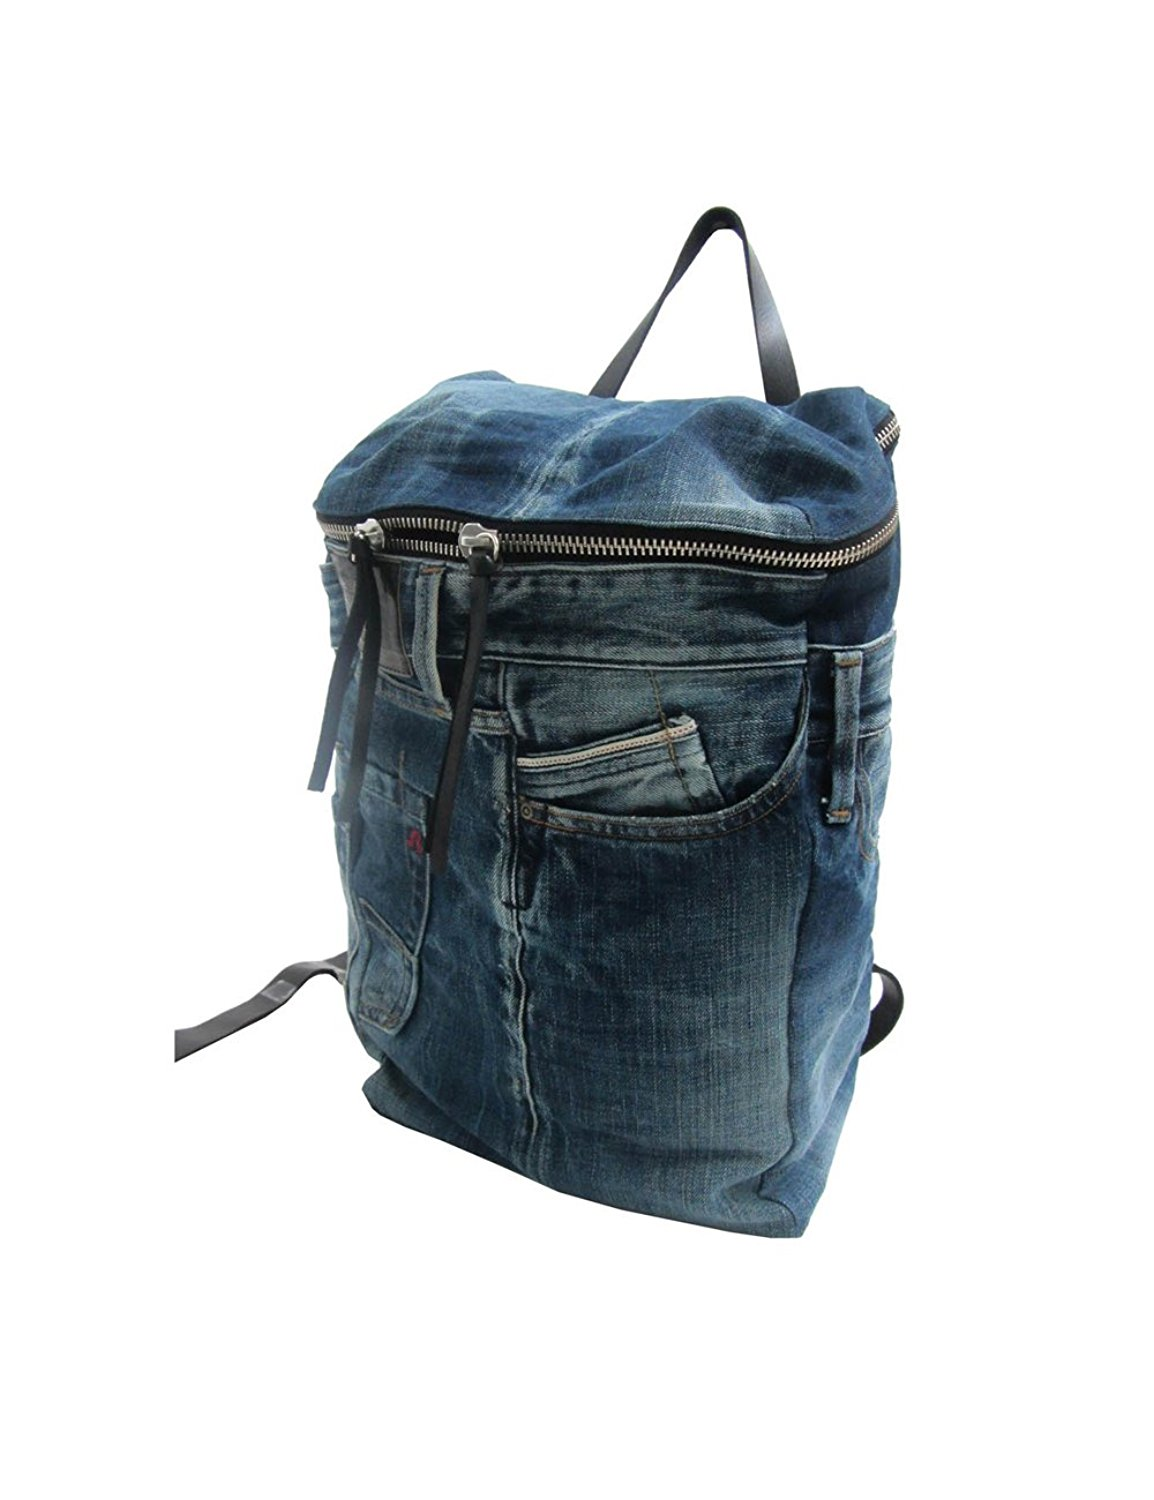 c117dbc37d83 Get Quotations · Replay Unisex Unisex Blue Denim Backpack 100% Cotton